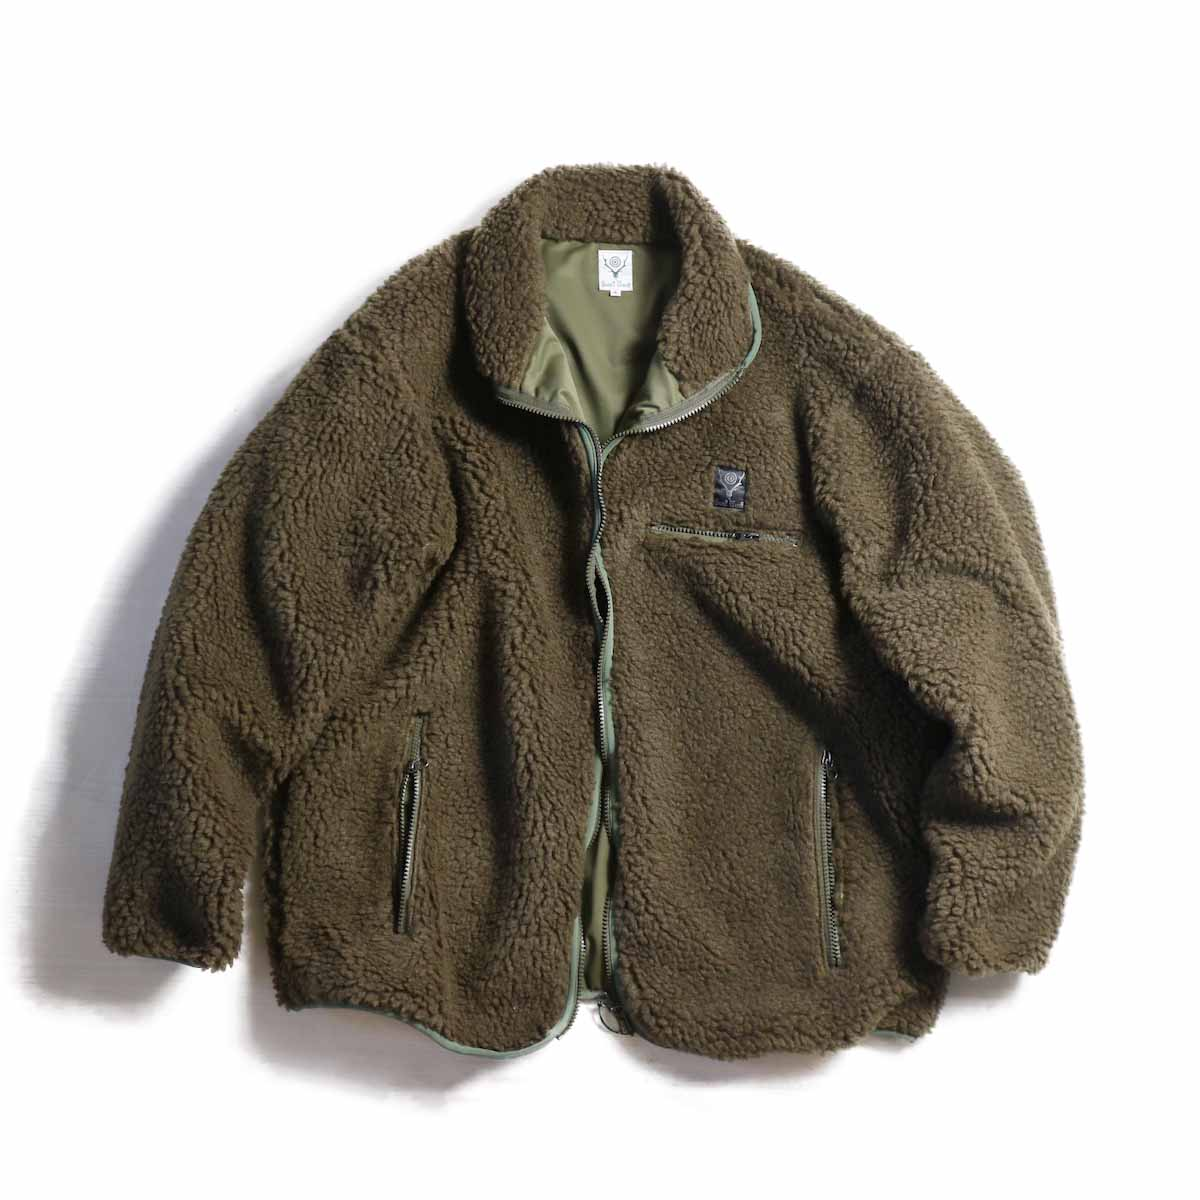 SOUTH2 WEST8 / Piping Jacket -Synthetic Pile(Olive)